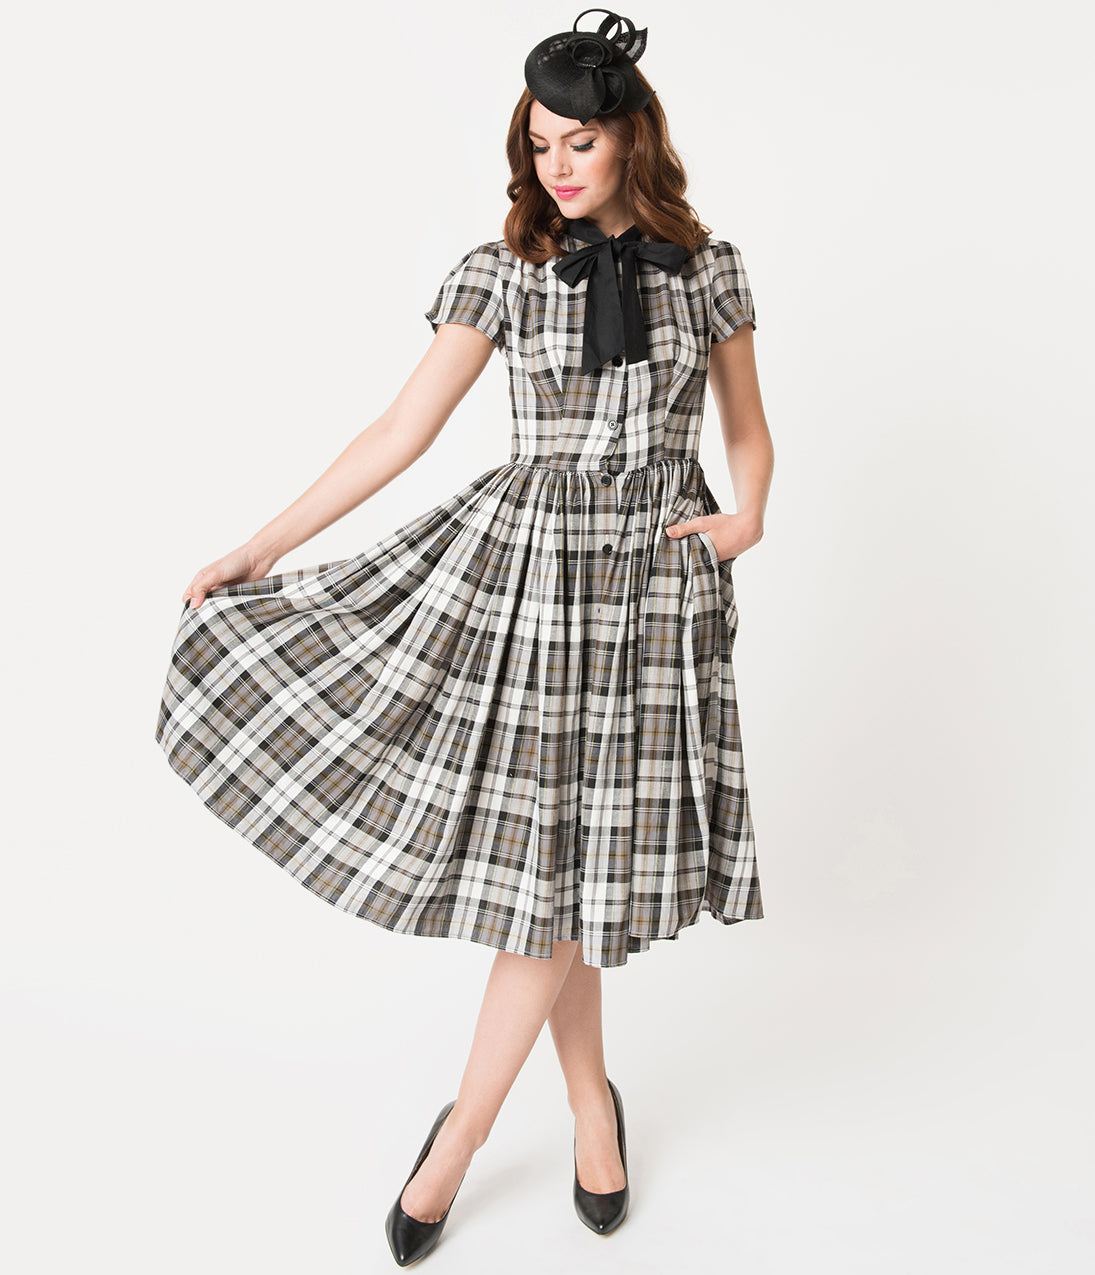 1950s Housewife Dress | 50s Day Dresses Unique Vintage 1950S Style Grey Plaid Button Up Swing Dress $74.00 AT vintagedancer.com